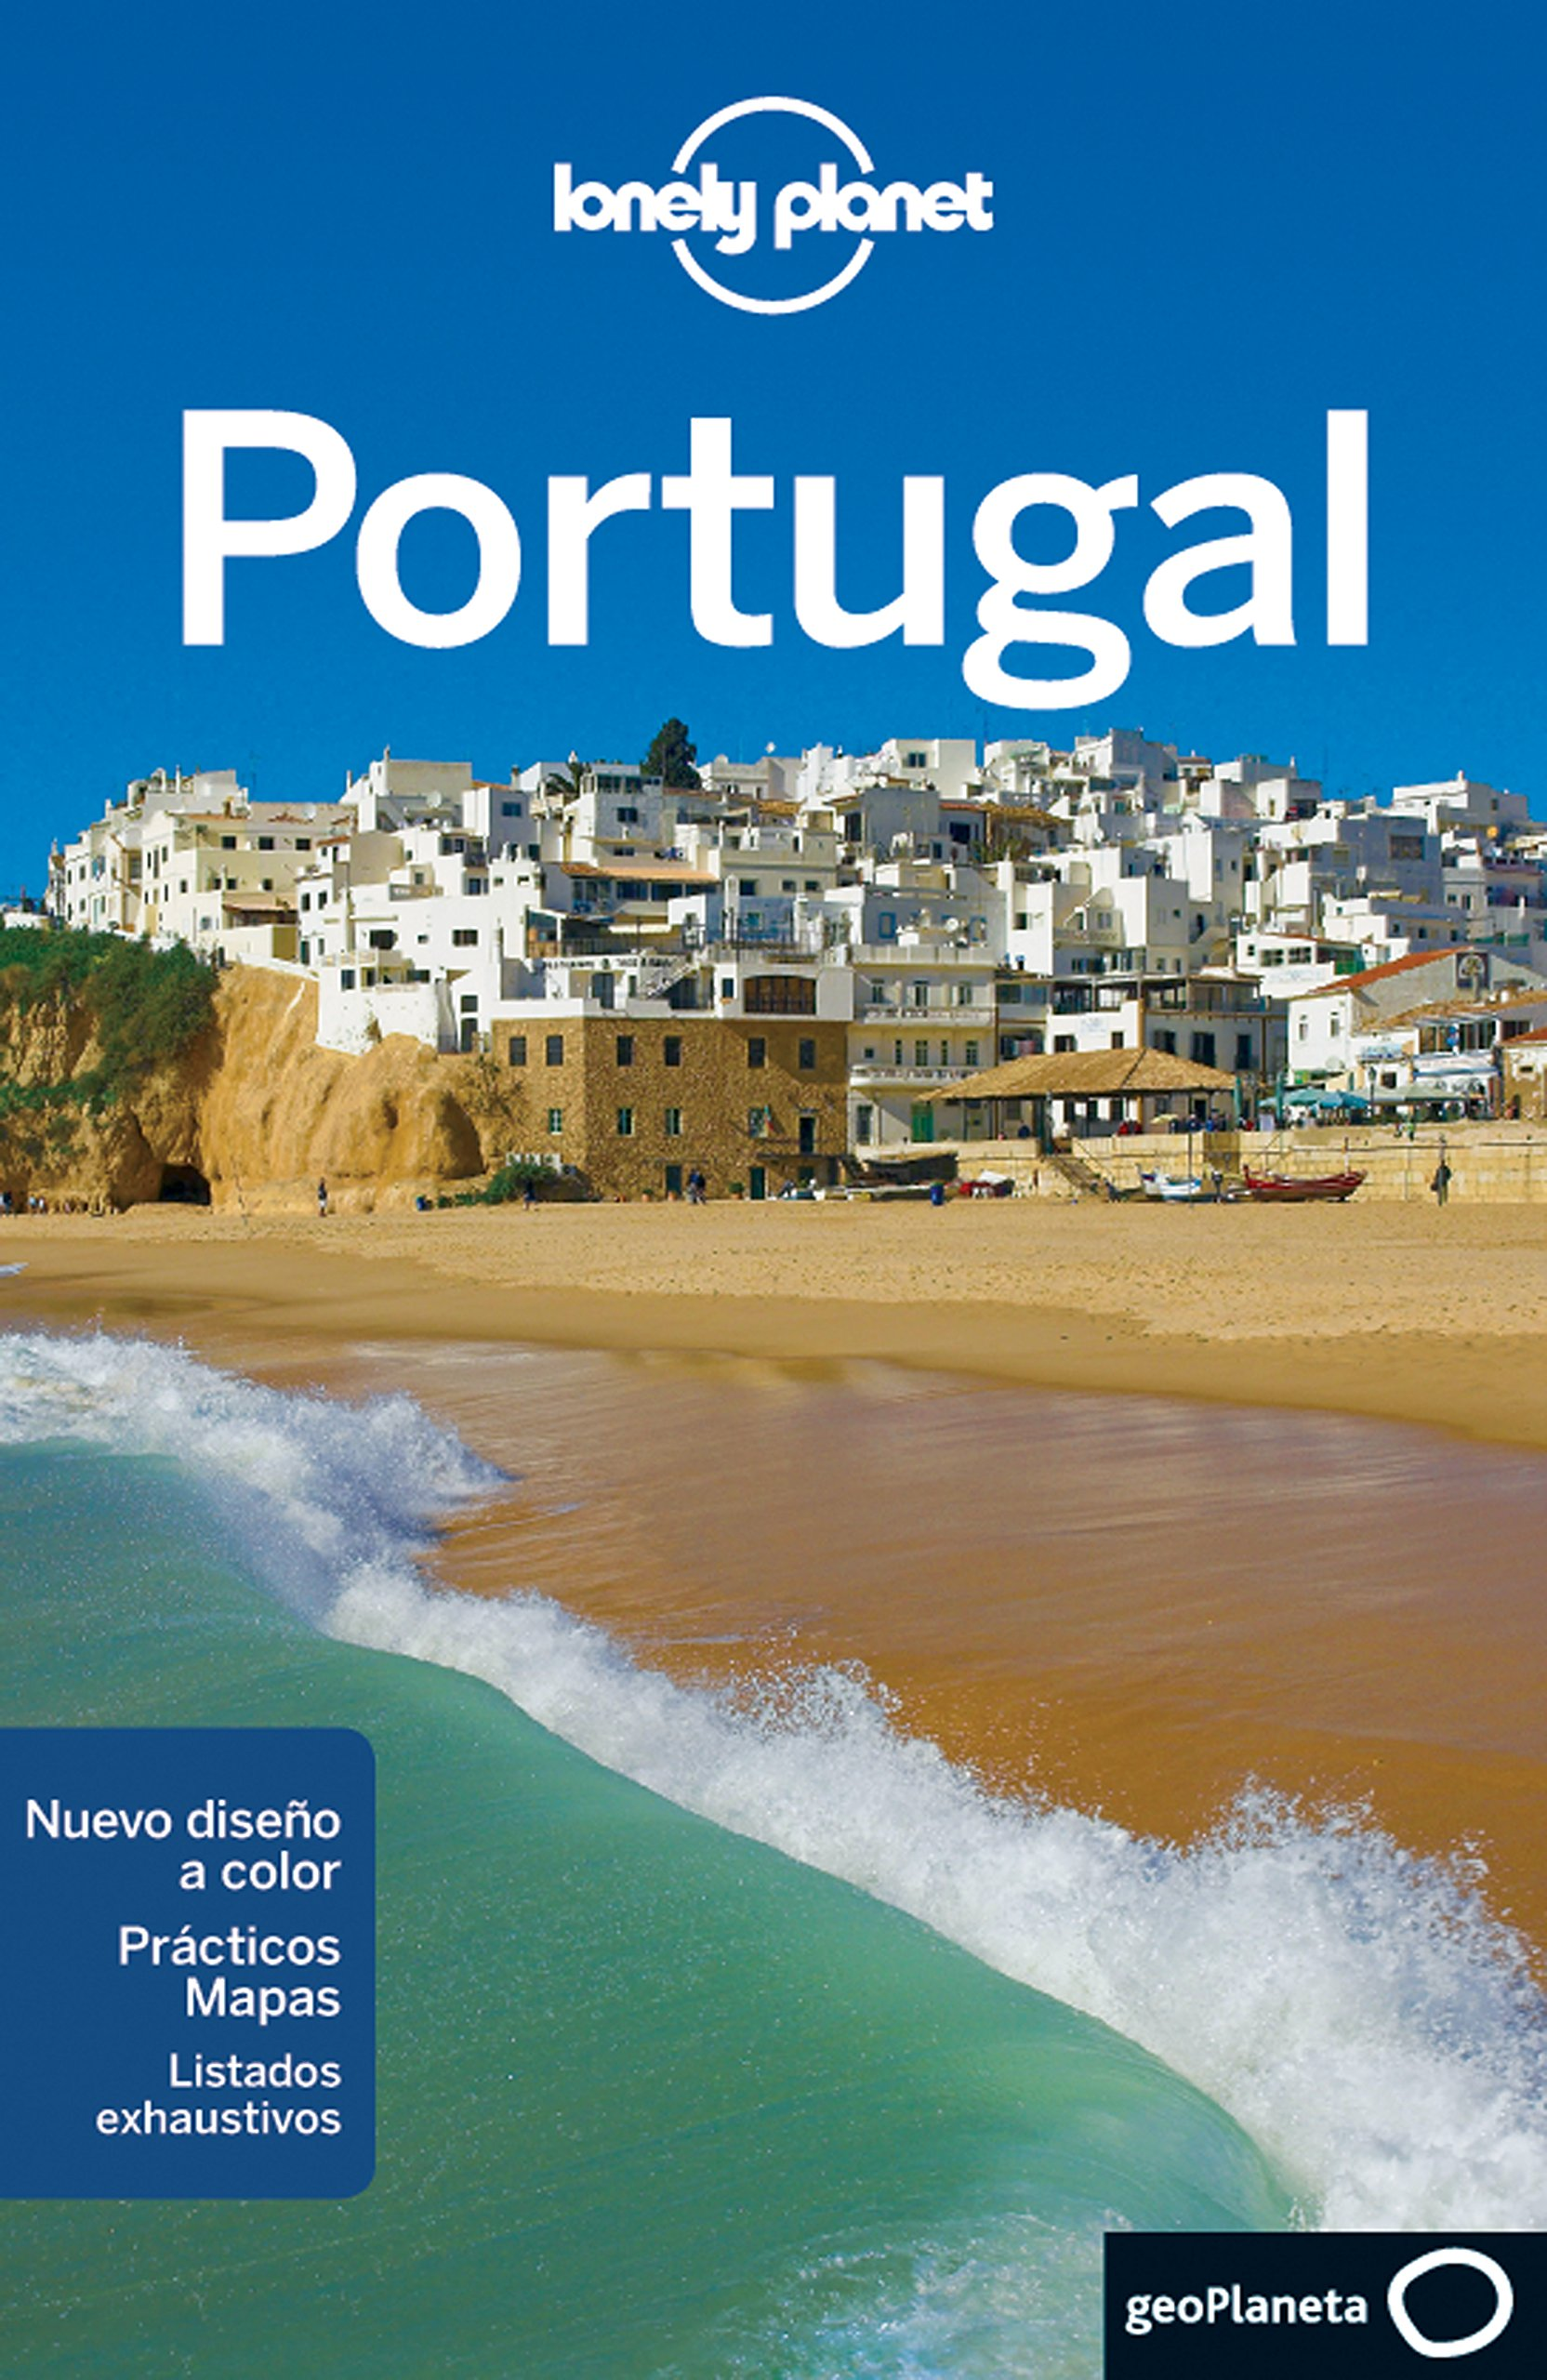 Portugal (Guías de País Lonely Planet): Amazon.es: Varios autores, Traductores varios: Libros